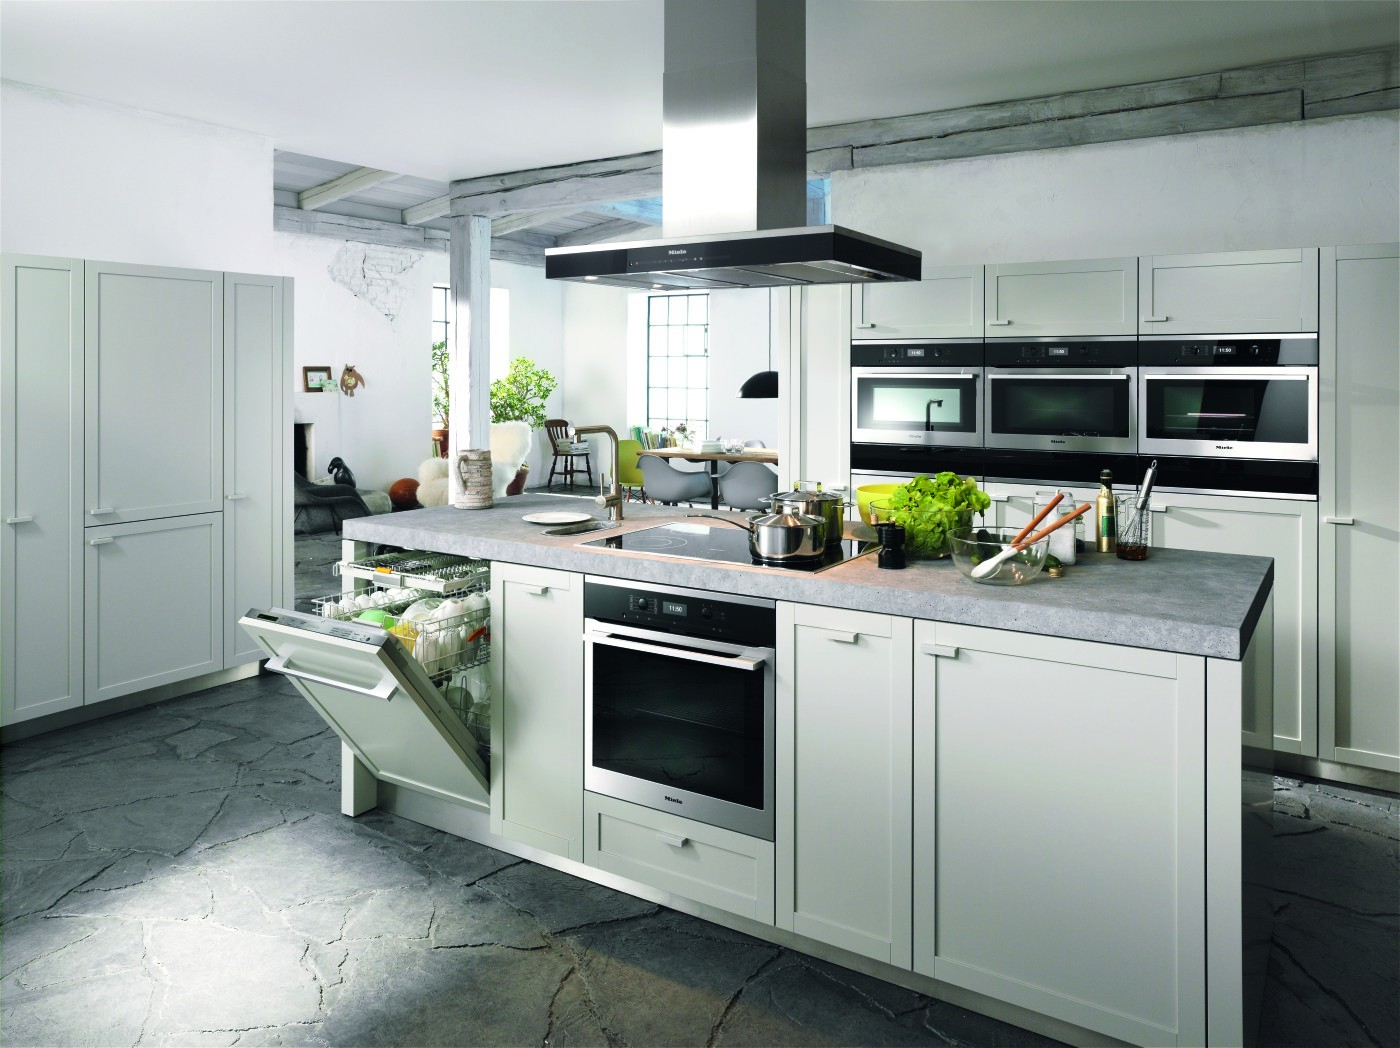 Miele kitchens london luxury kitchen store elan kitchens for Küchen miele